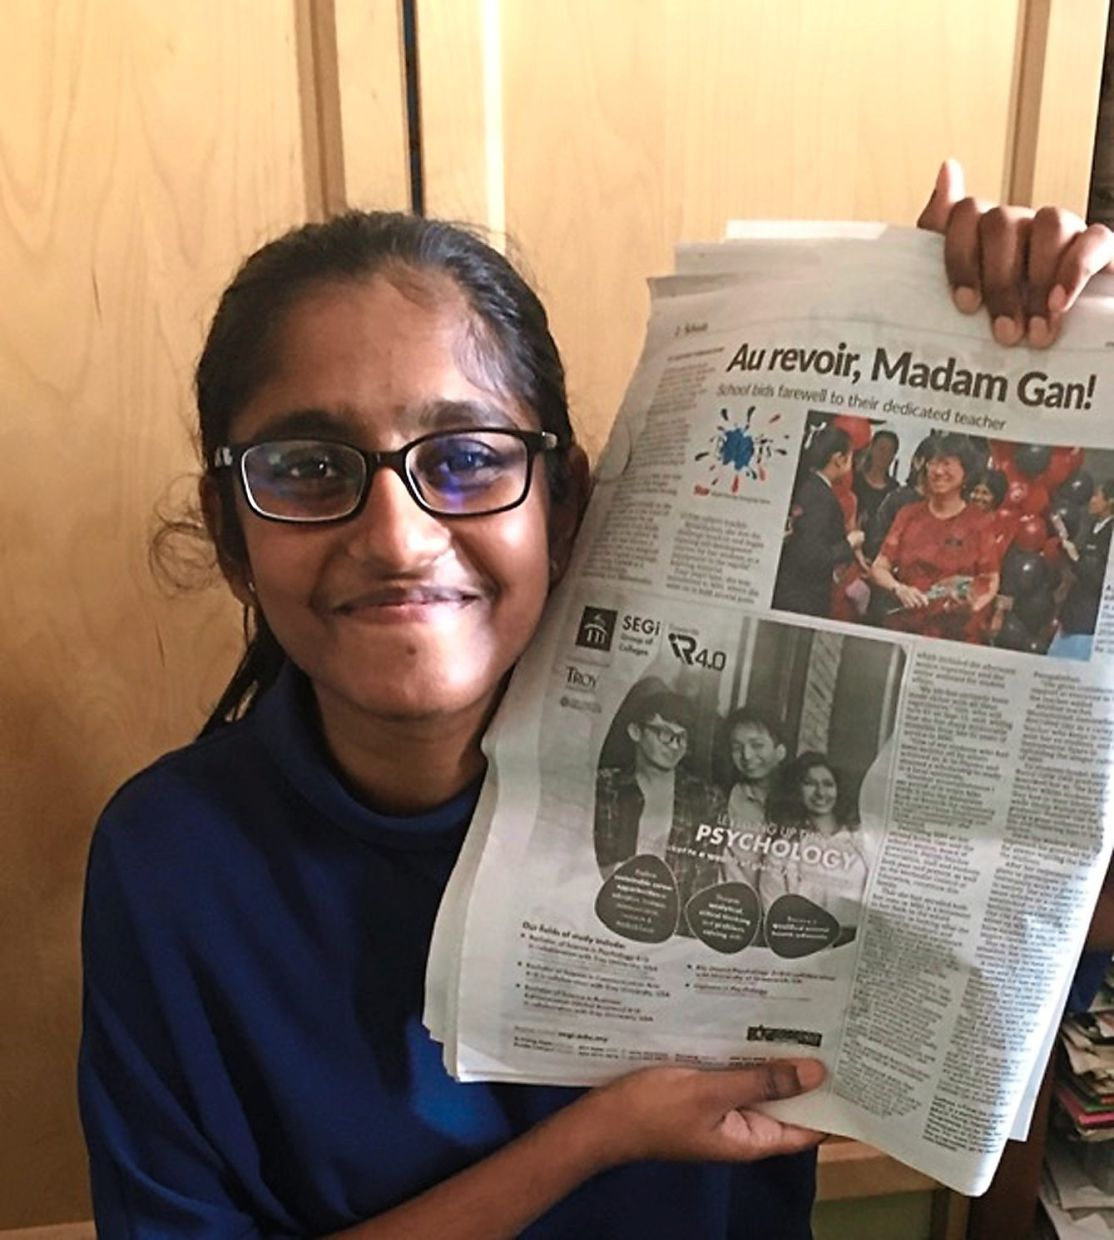 A winning sensation: Sadhna felt like a Nobel Prize recipient the day The Star published her story on her teacher's retirement.